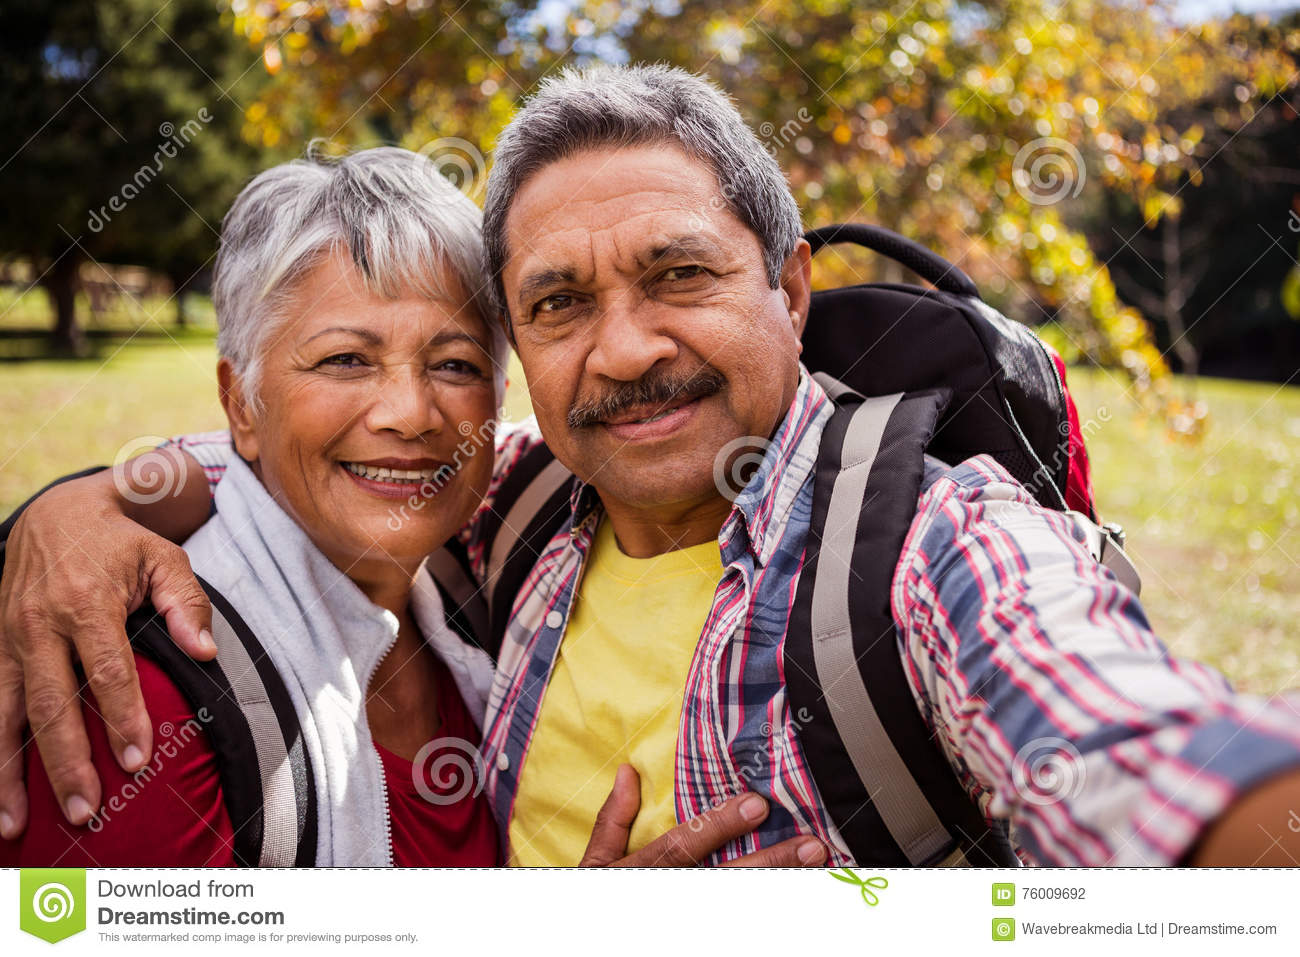 Download An Elderly Couple Posing For A Selfie Stock Photo